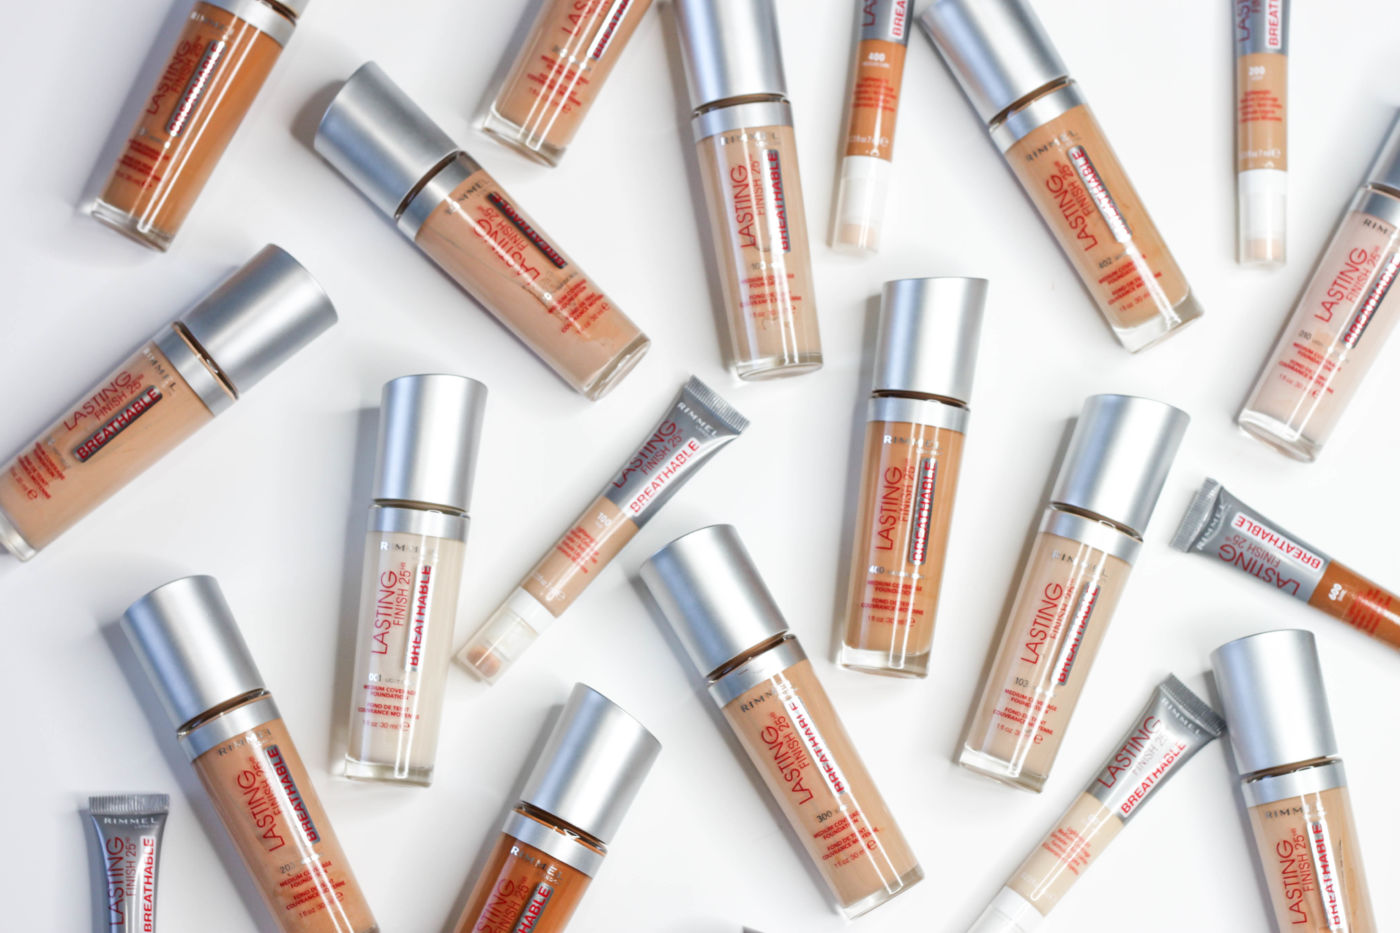 Rimmel Lasting Finish Breathable Foundation Collection | Review + Swatches